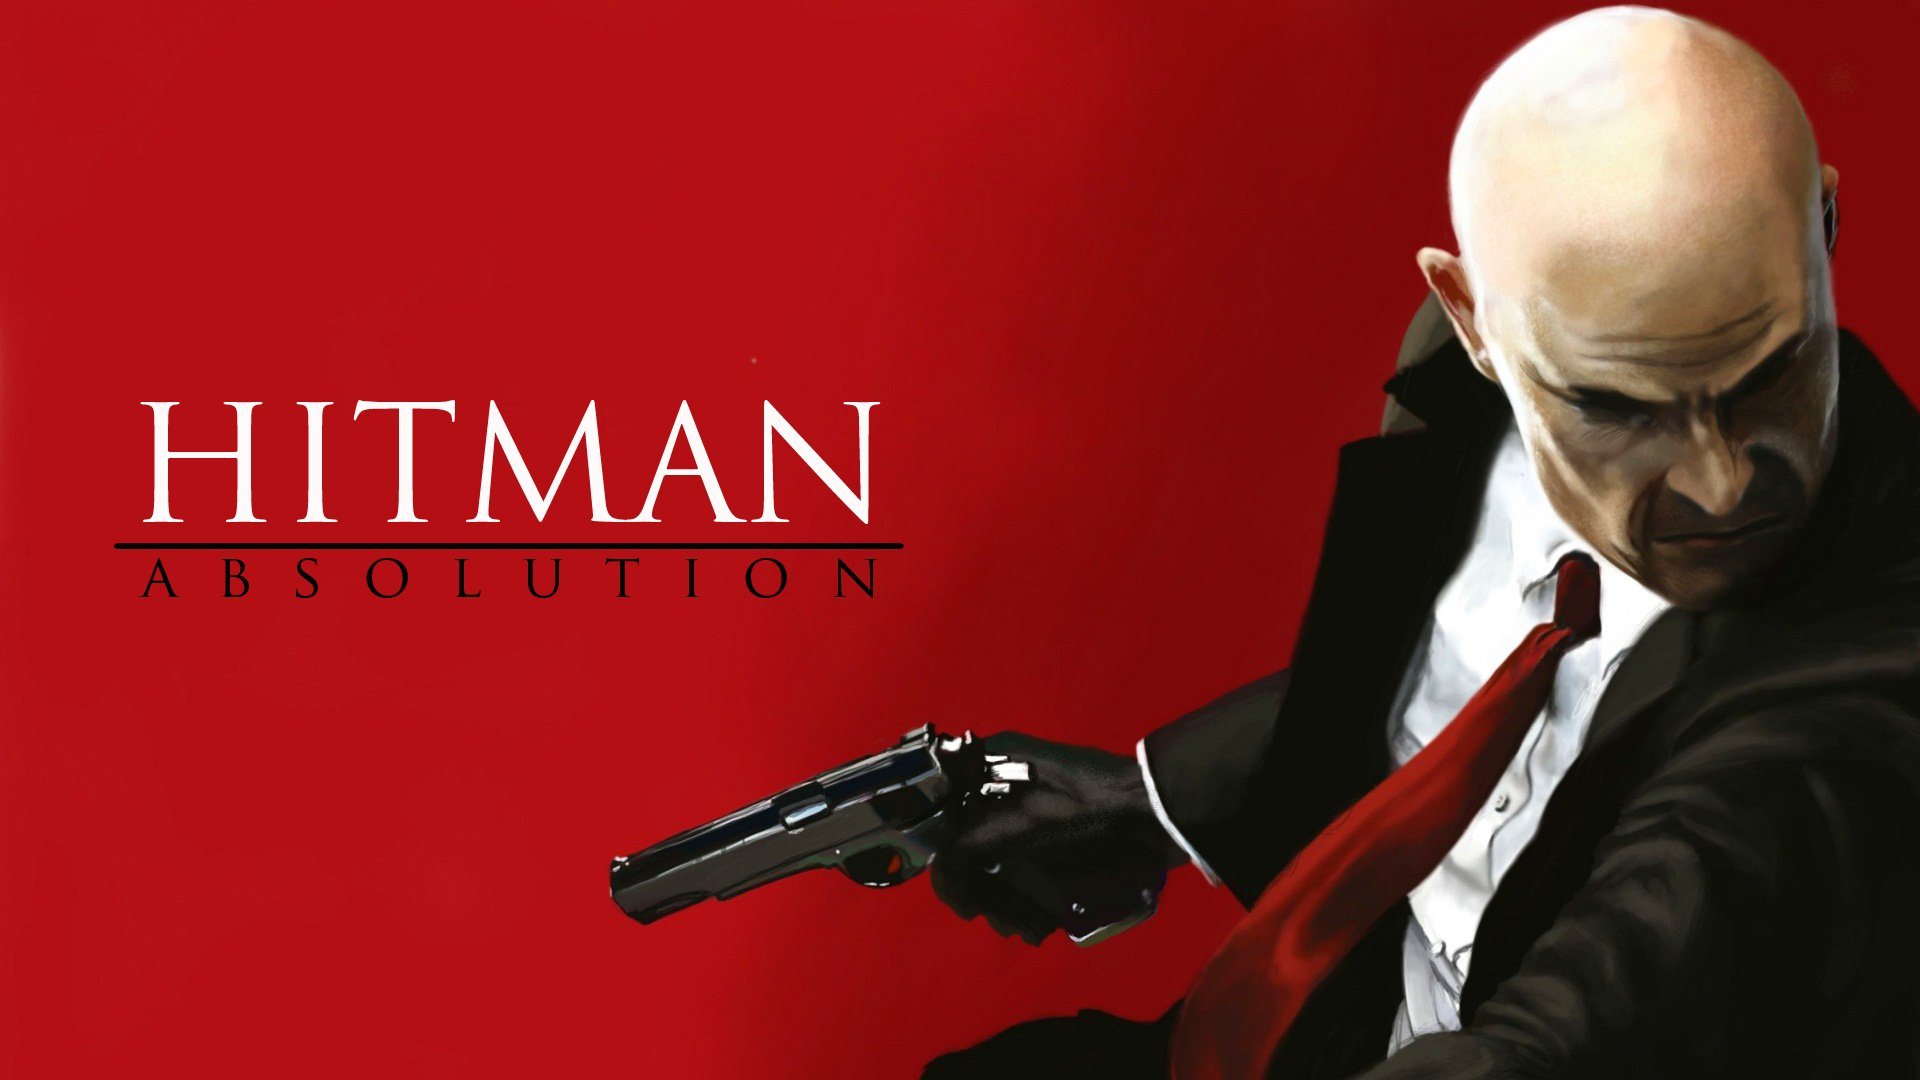 hitman_absolution_featured